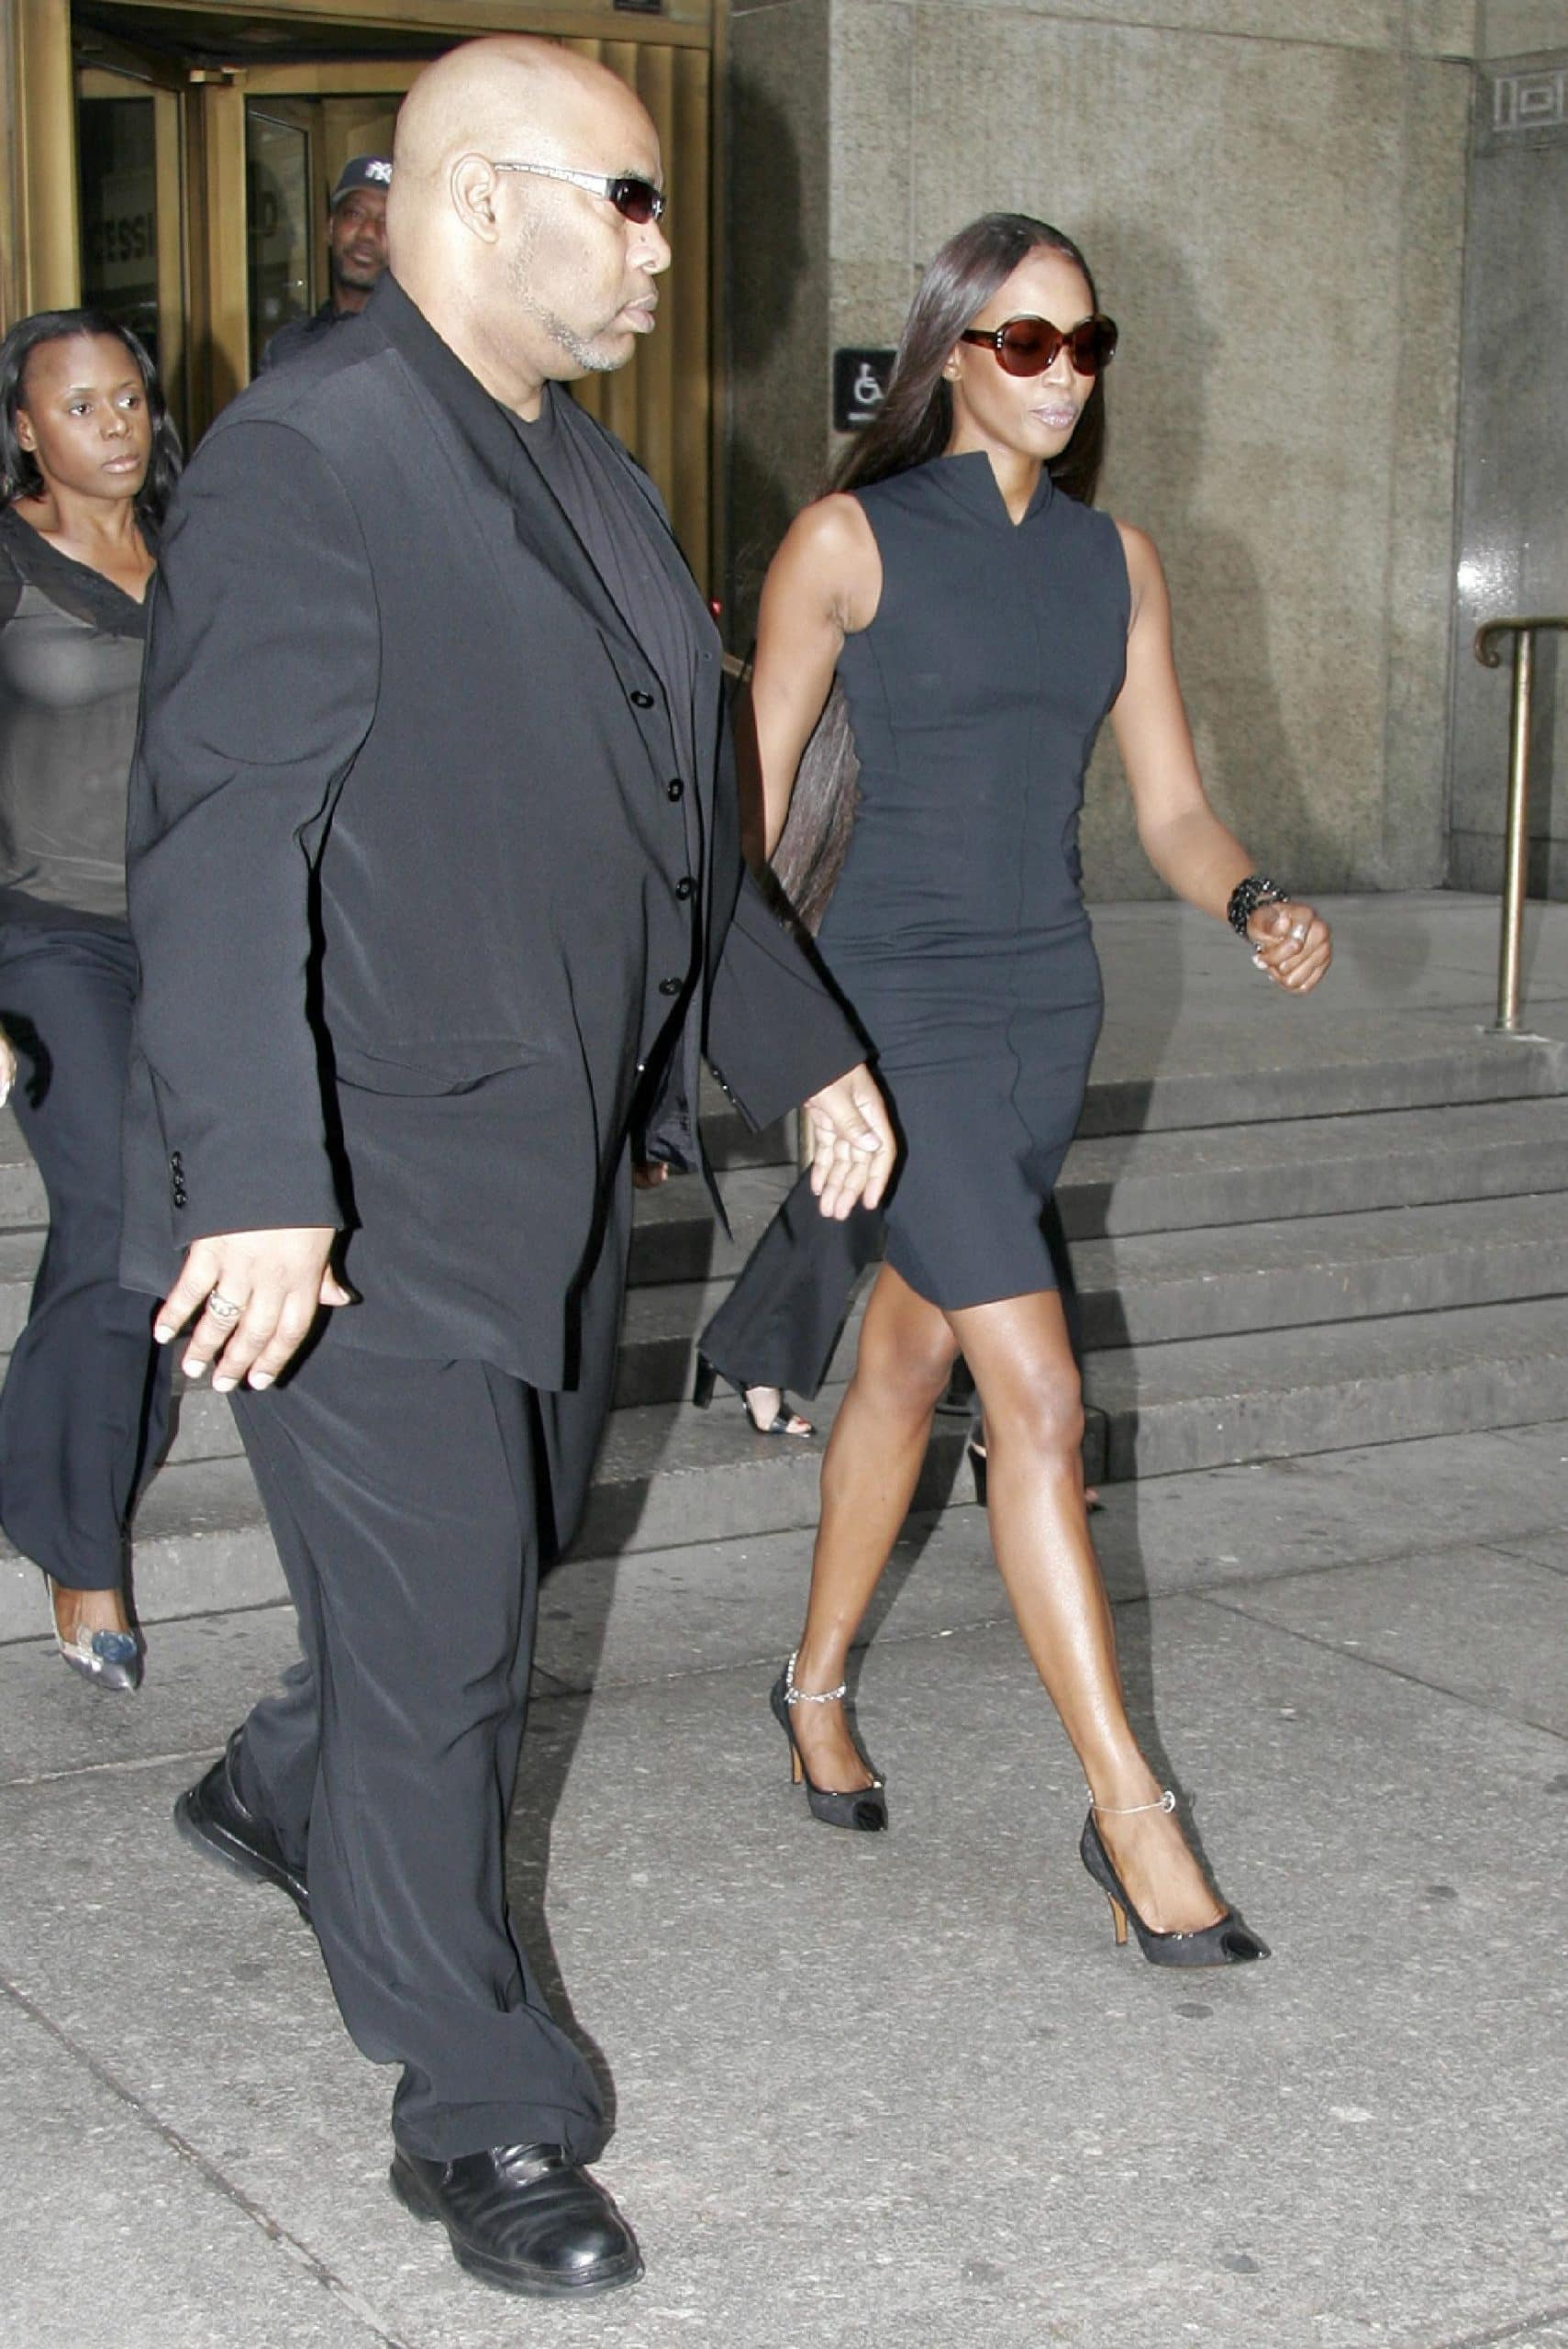 Naomi Campbell leaving Manhattan Criminal Court where she appeared on charges of second-degree assault in New York City